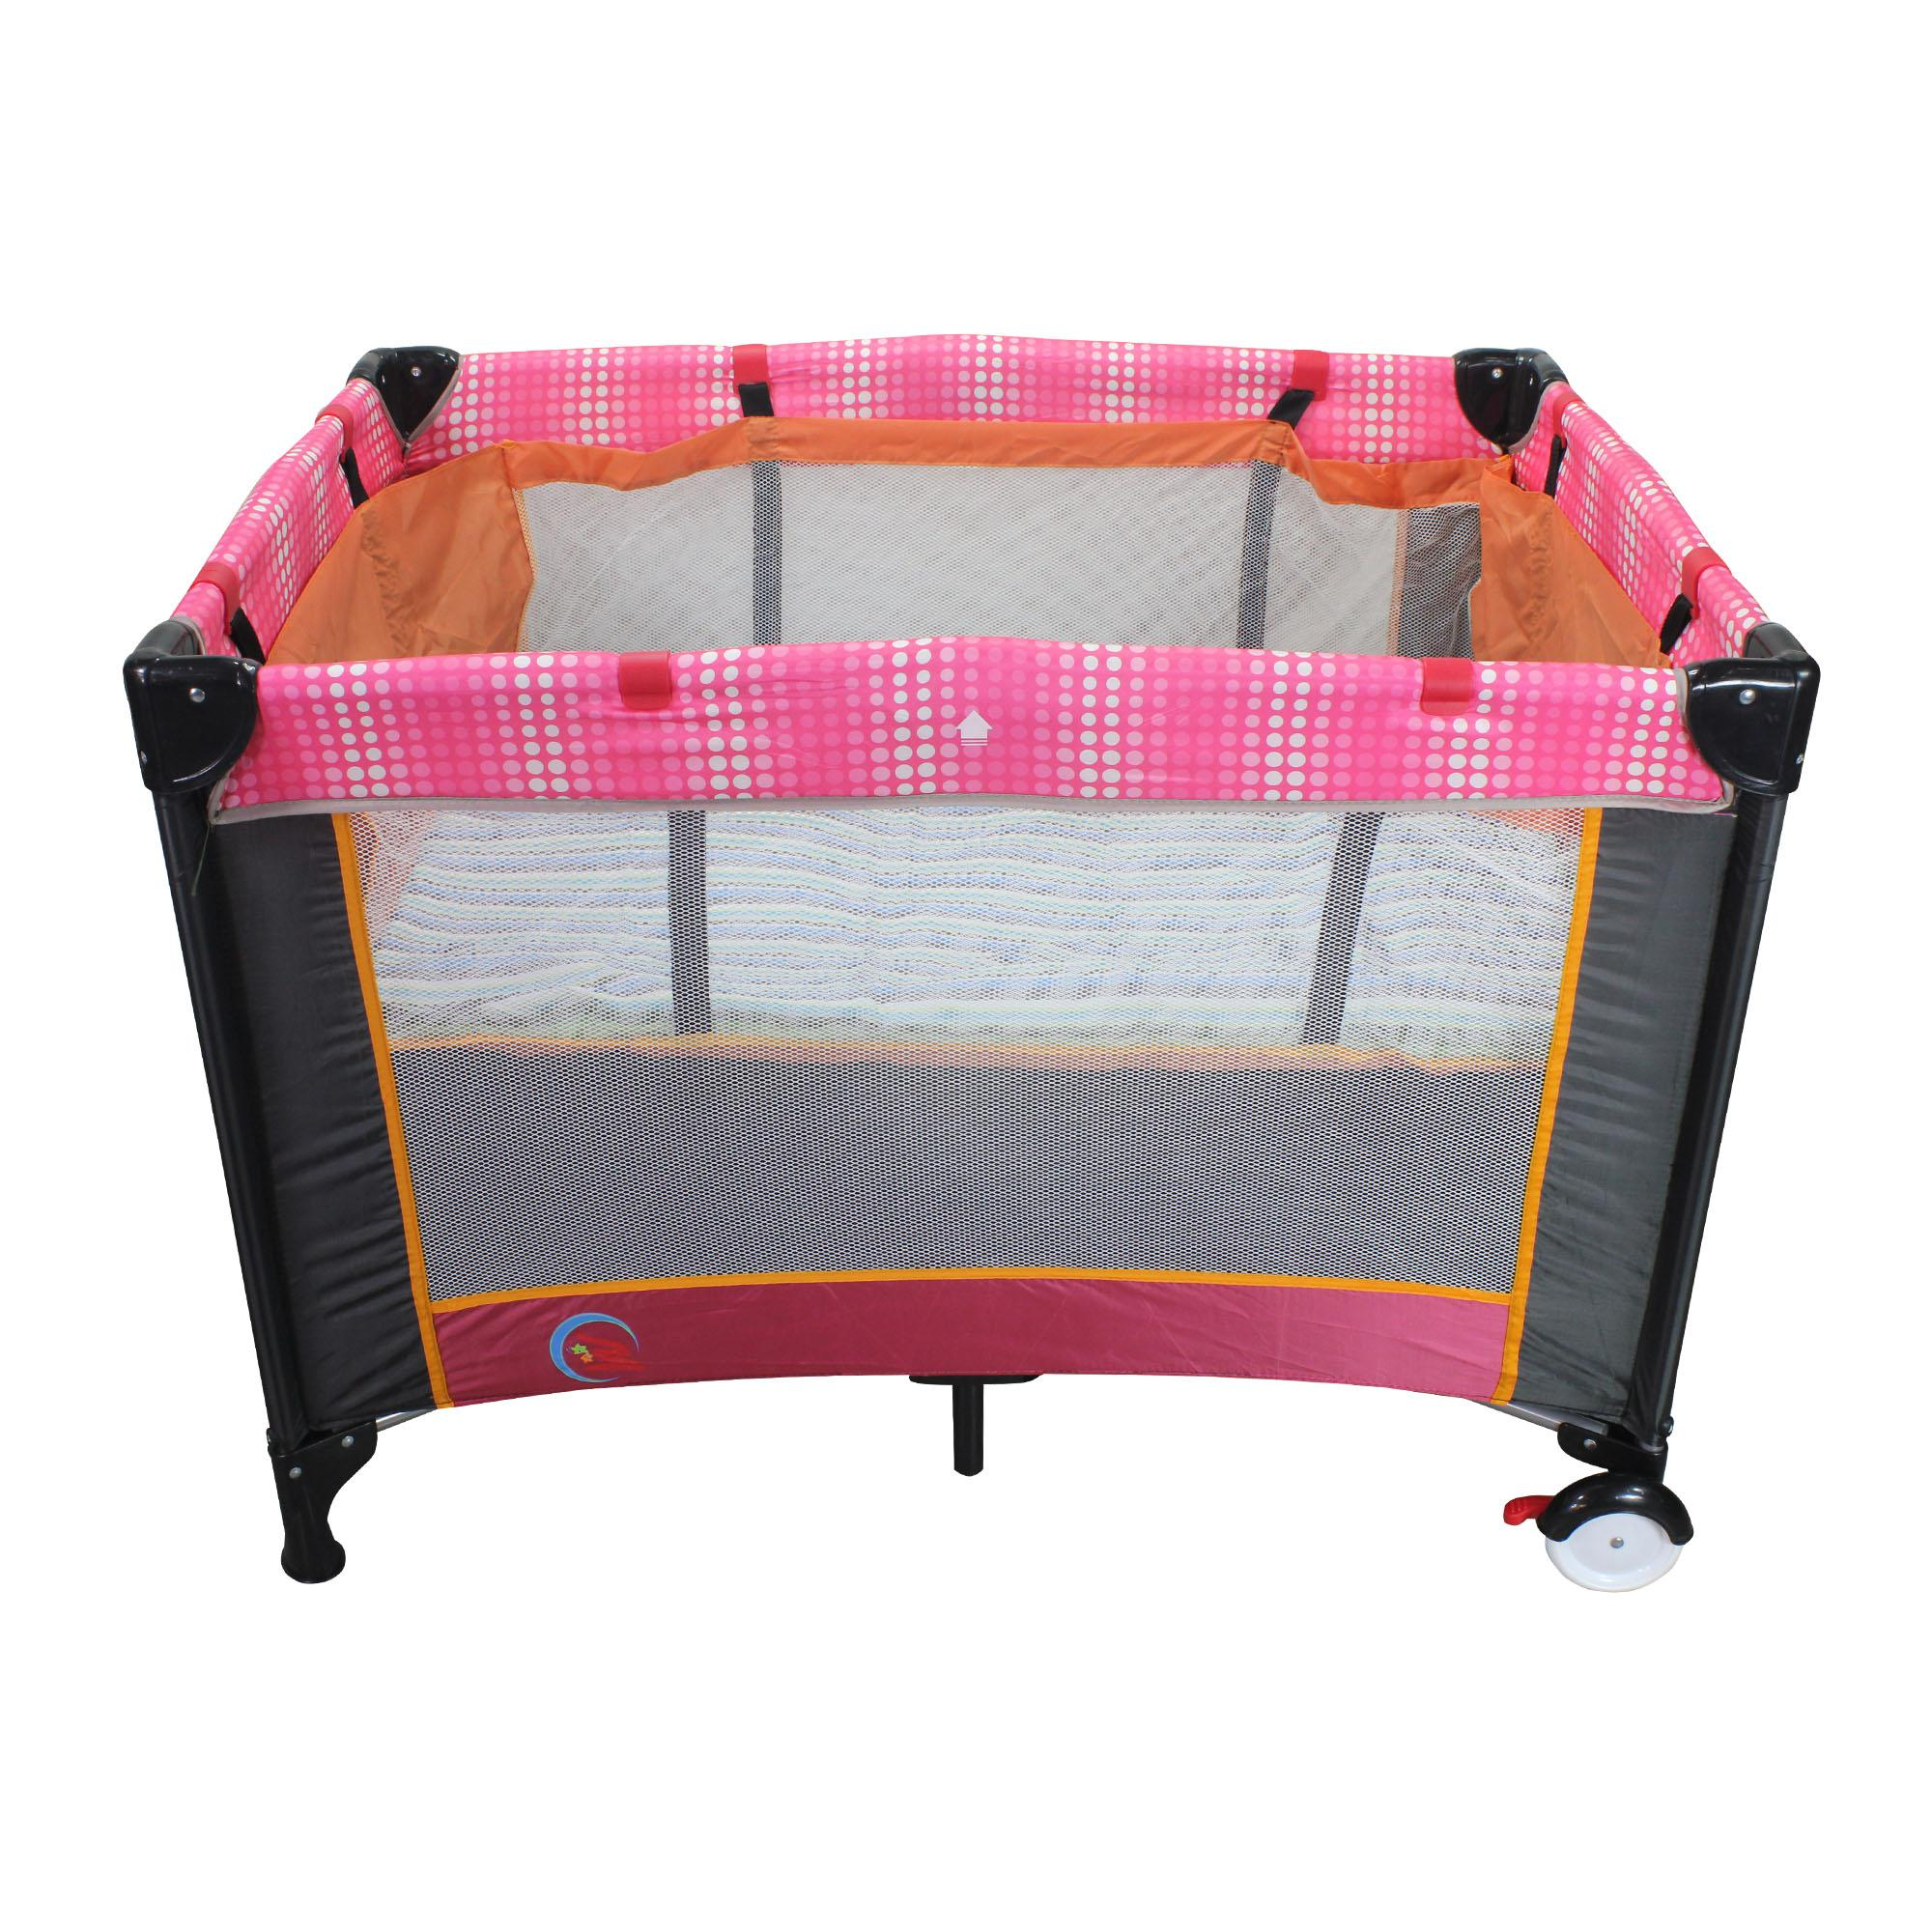 New Unicorn Baby Portable Foldable Playpen Play Yard Baby Crib  03(Pink black) ffd9c976e0